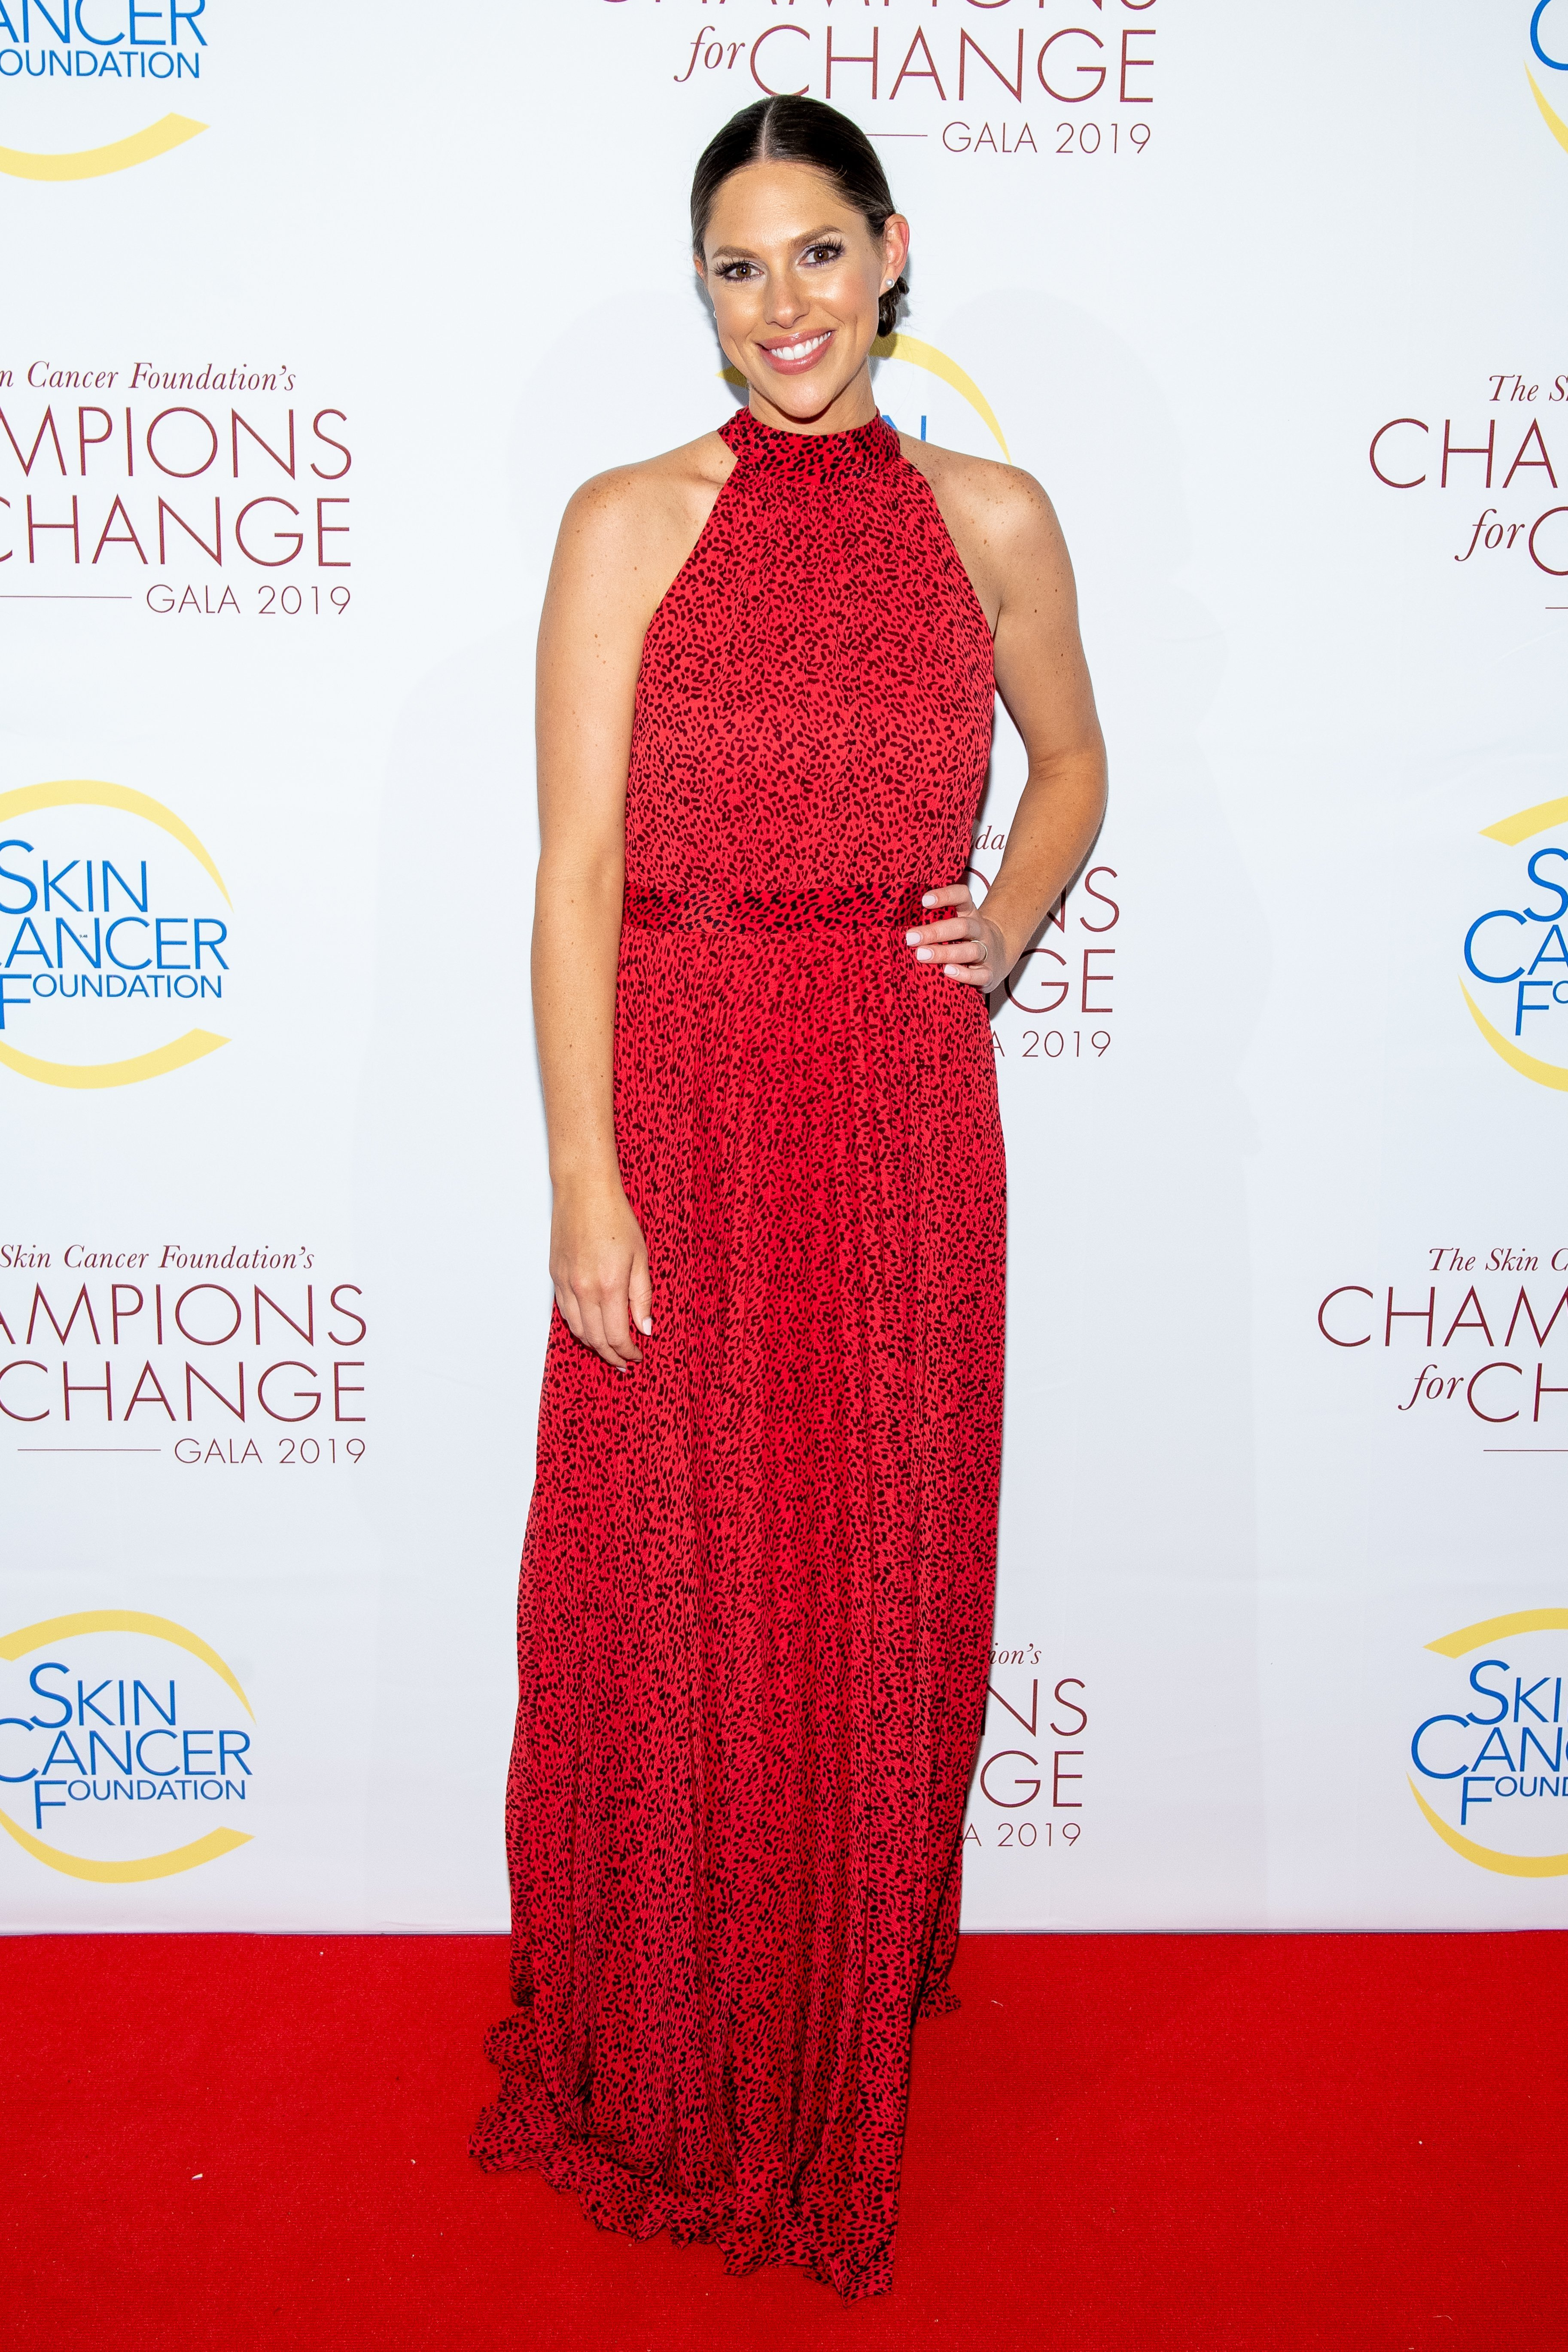 Actress Abby Huntsman attends the 2019 Skin Cancer Foundation's Champions For Change Gala at The Plaza Hotel on October 17, 2019|Photo: Getty Images